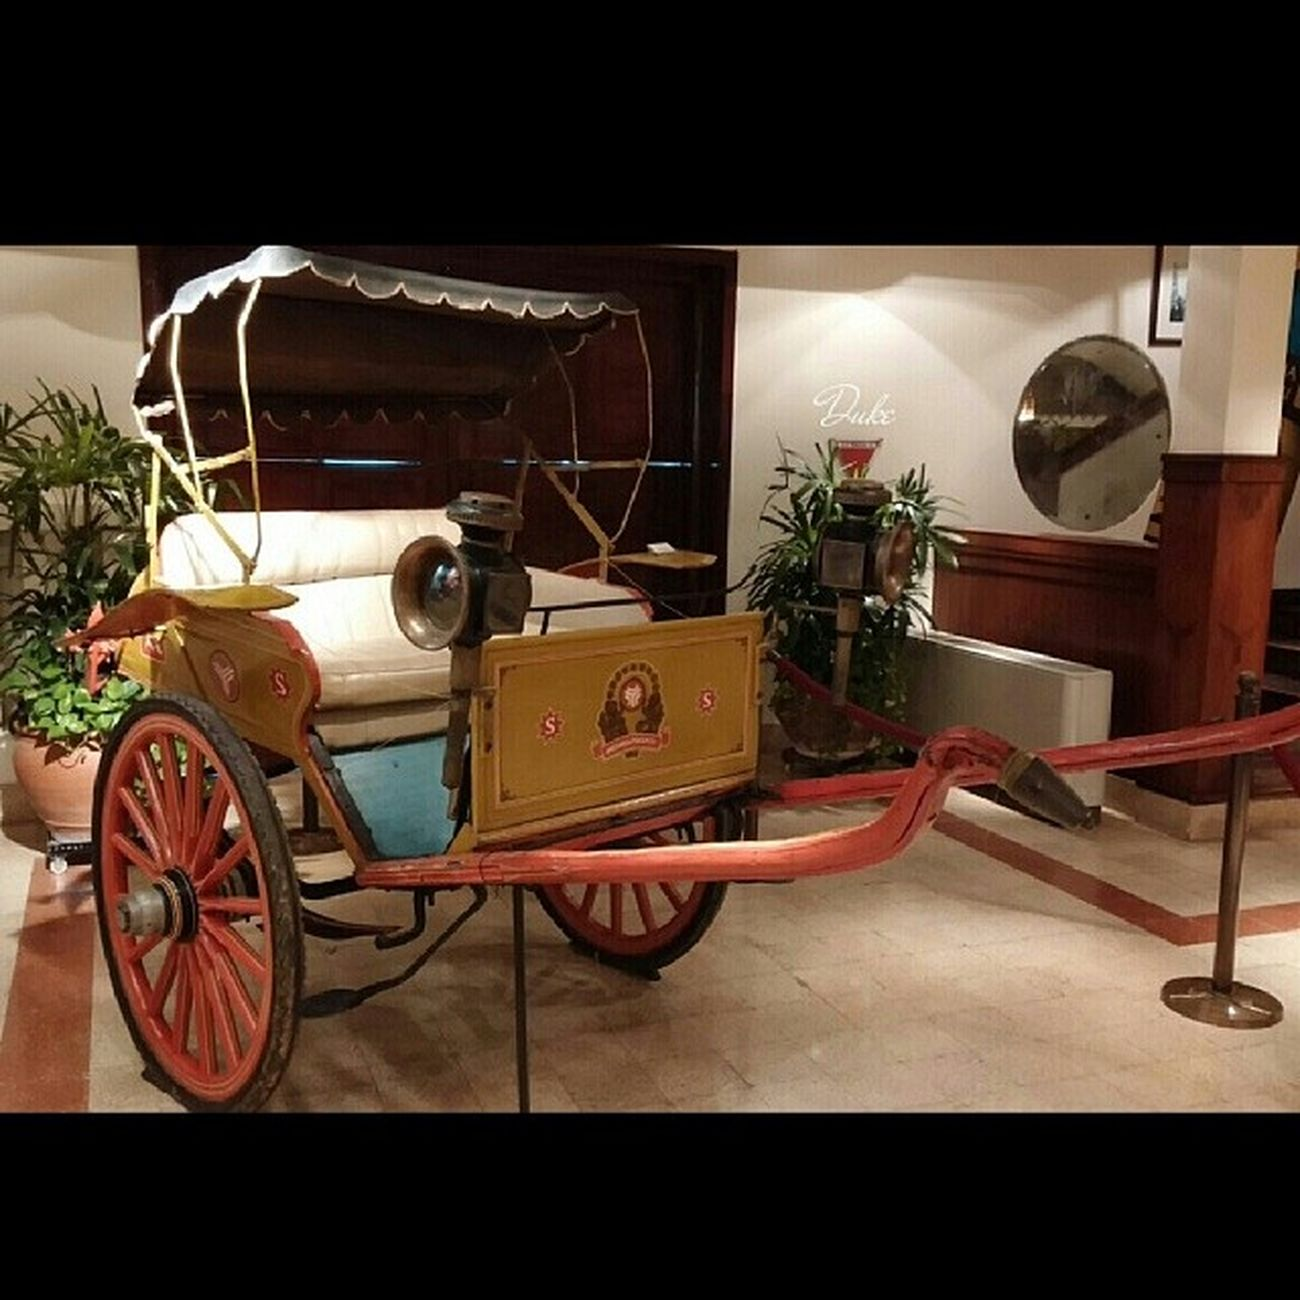 Delman Dokar Dogcart Dogcar bounder antique traditional transportation vintage retro horse museum oldschool